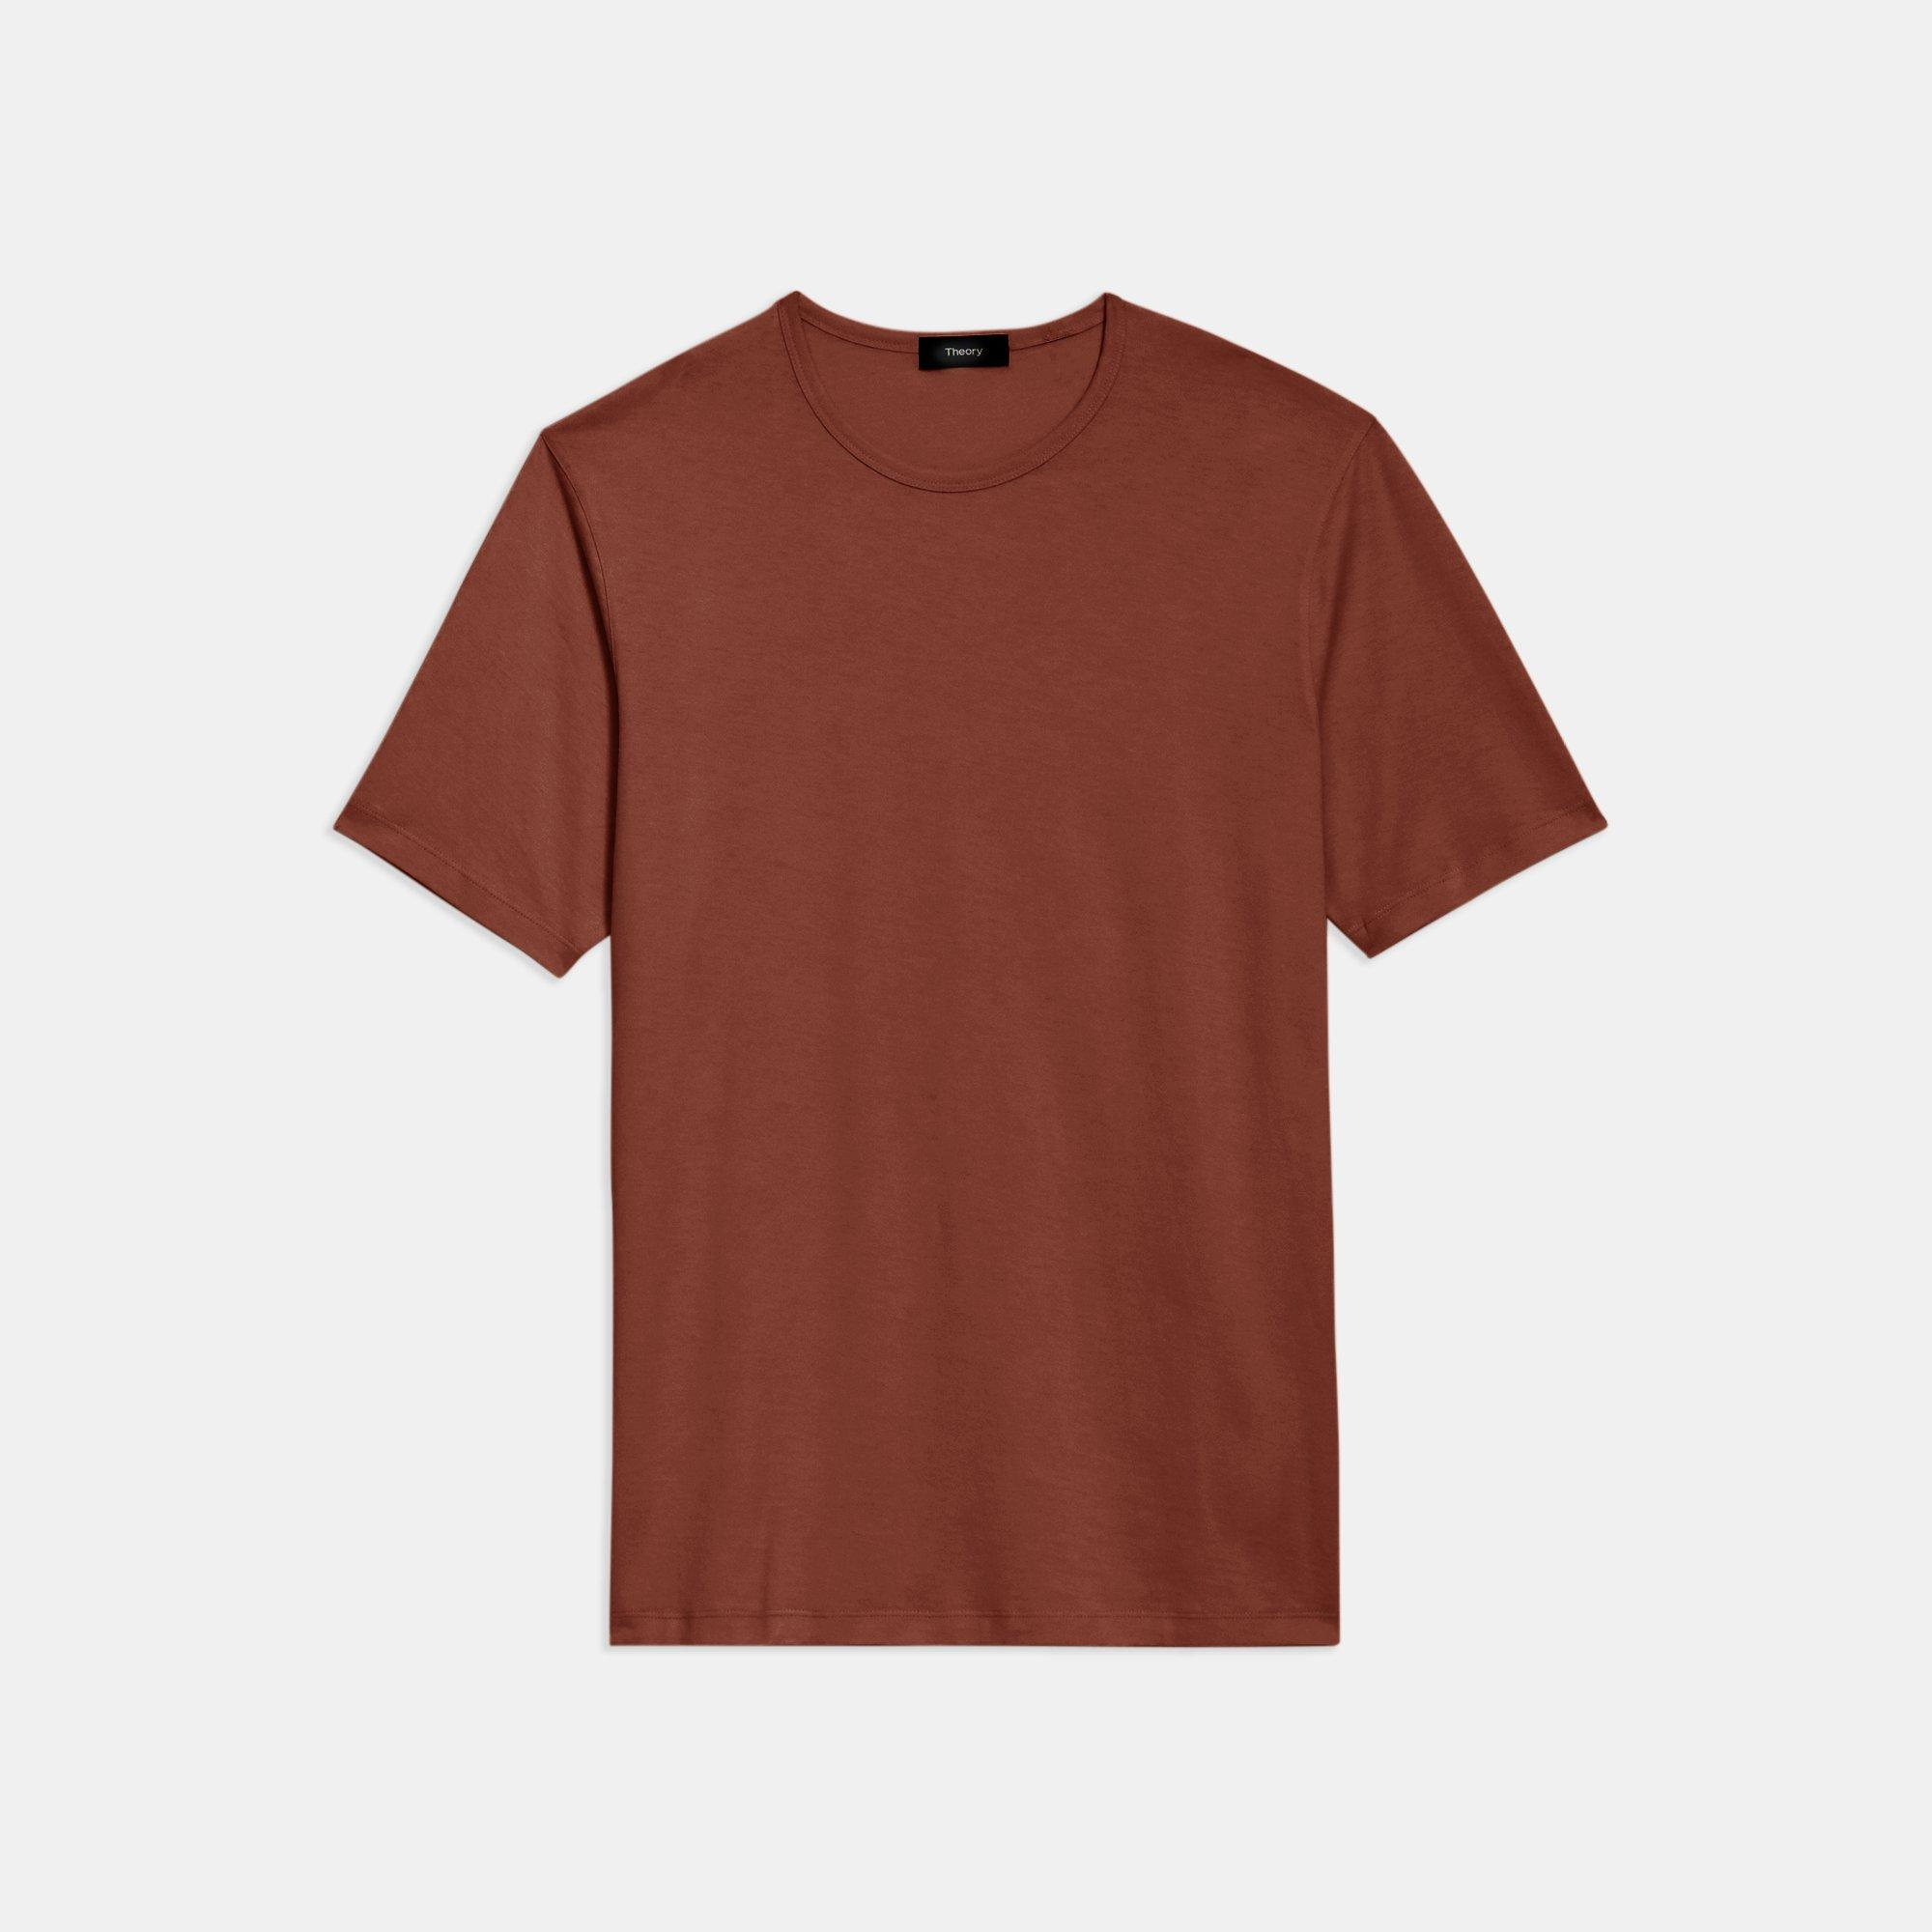 Precise Tee in Luxe Cotton Jersey   Theory